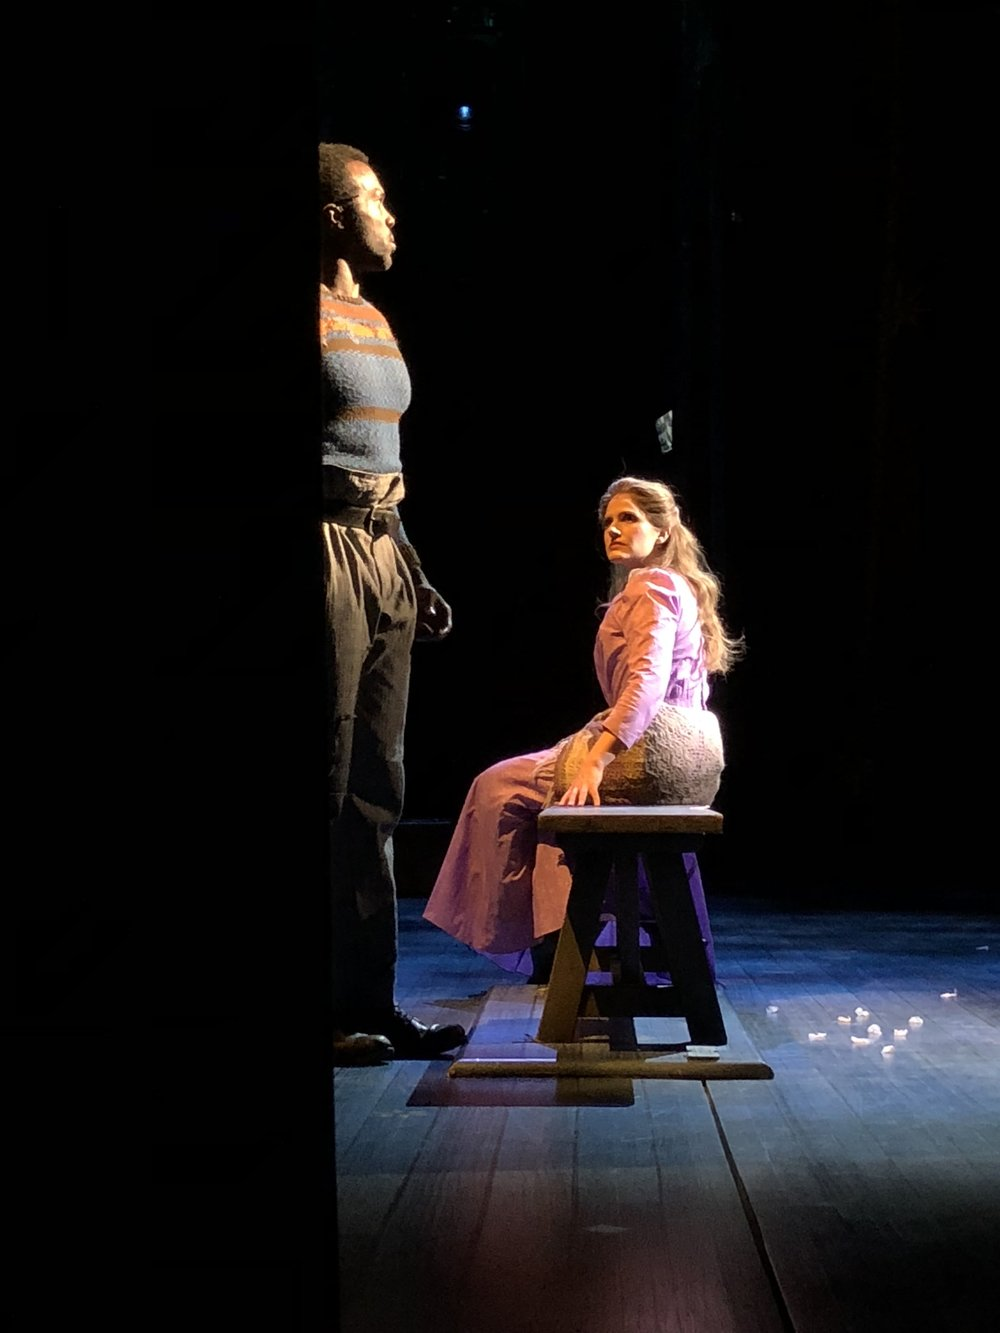 """If I Loved You"", Julie, Carousel, Broadway (with Joshua Henry)"